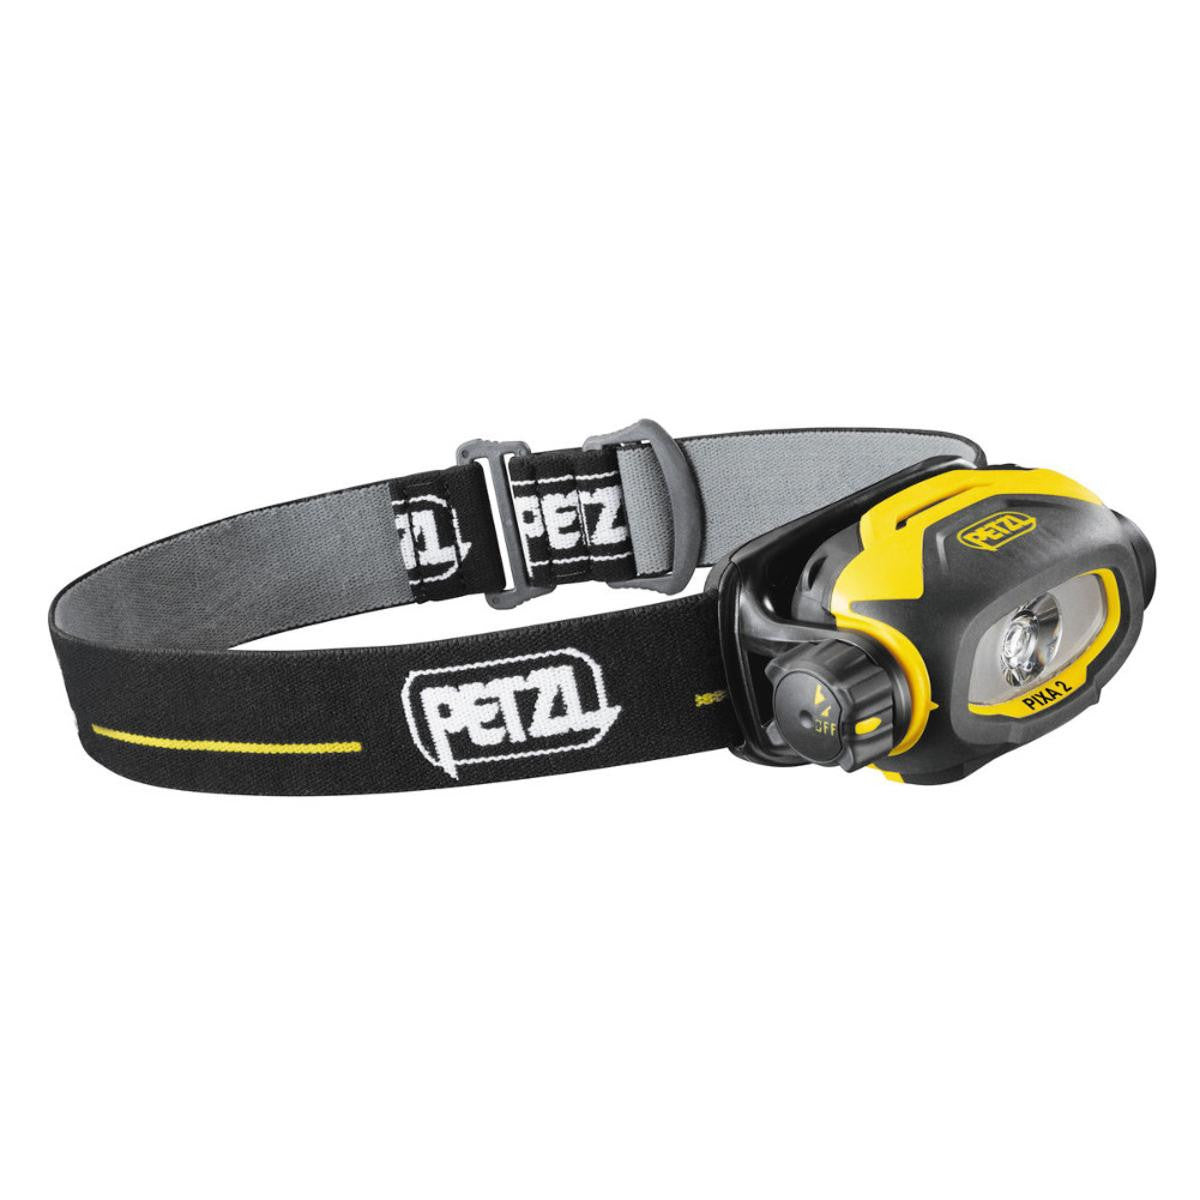 Petzl Pixa 2 Headlamp Black Yellow